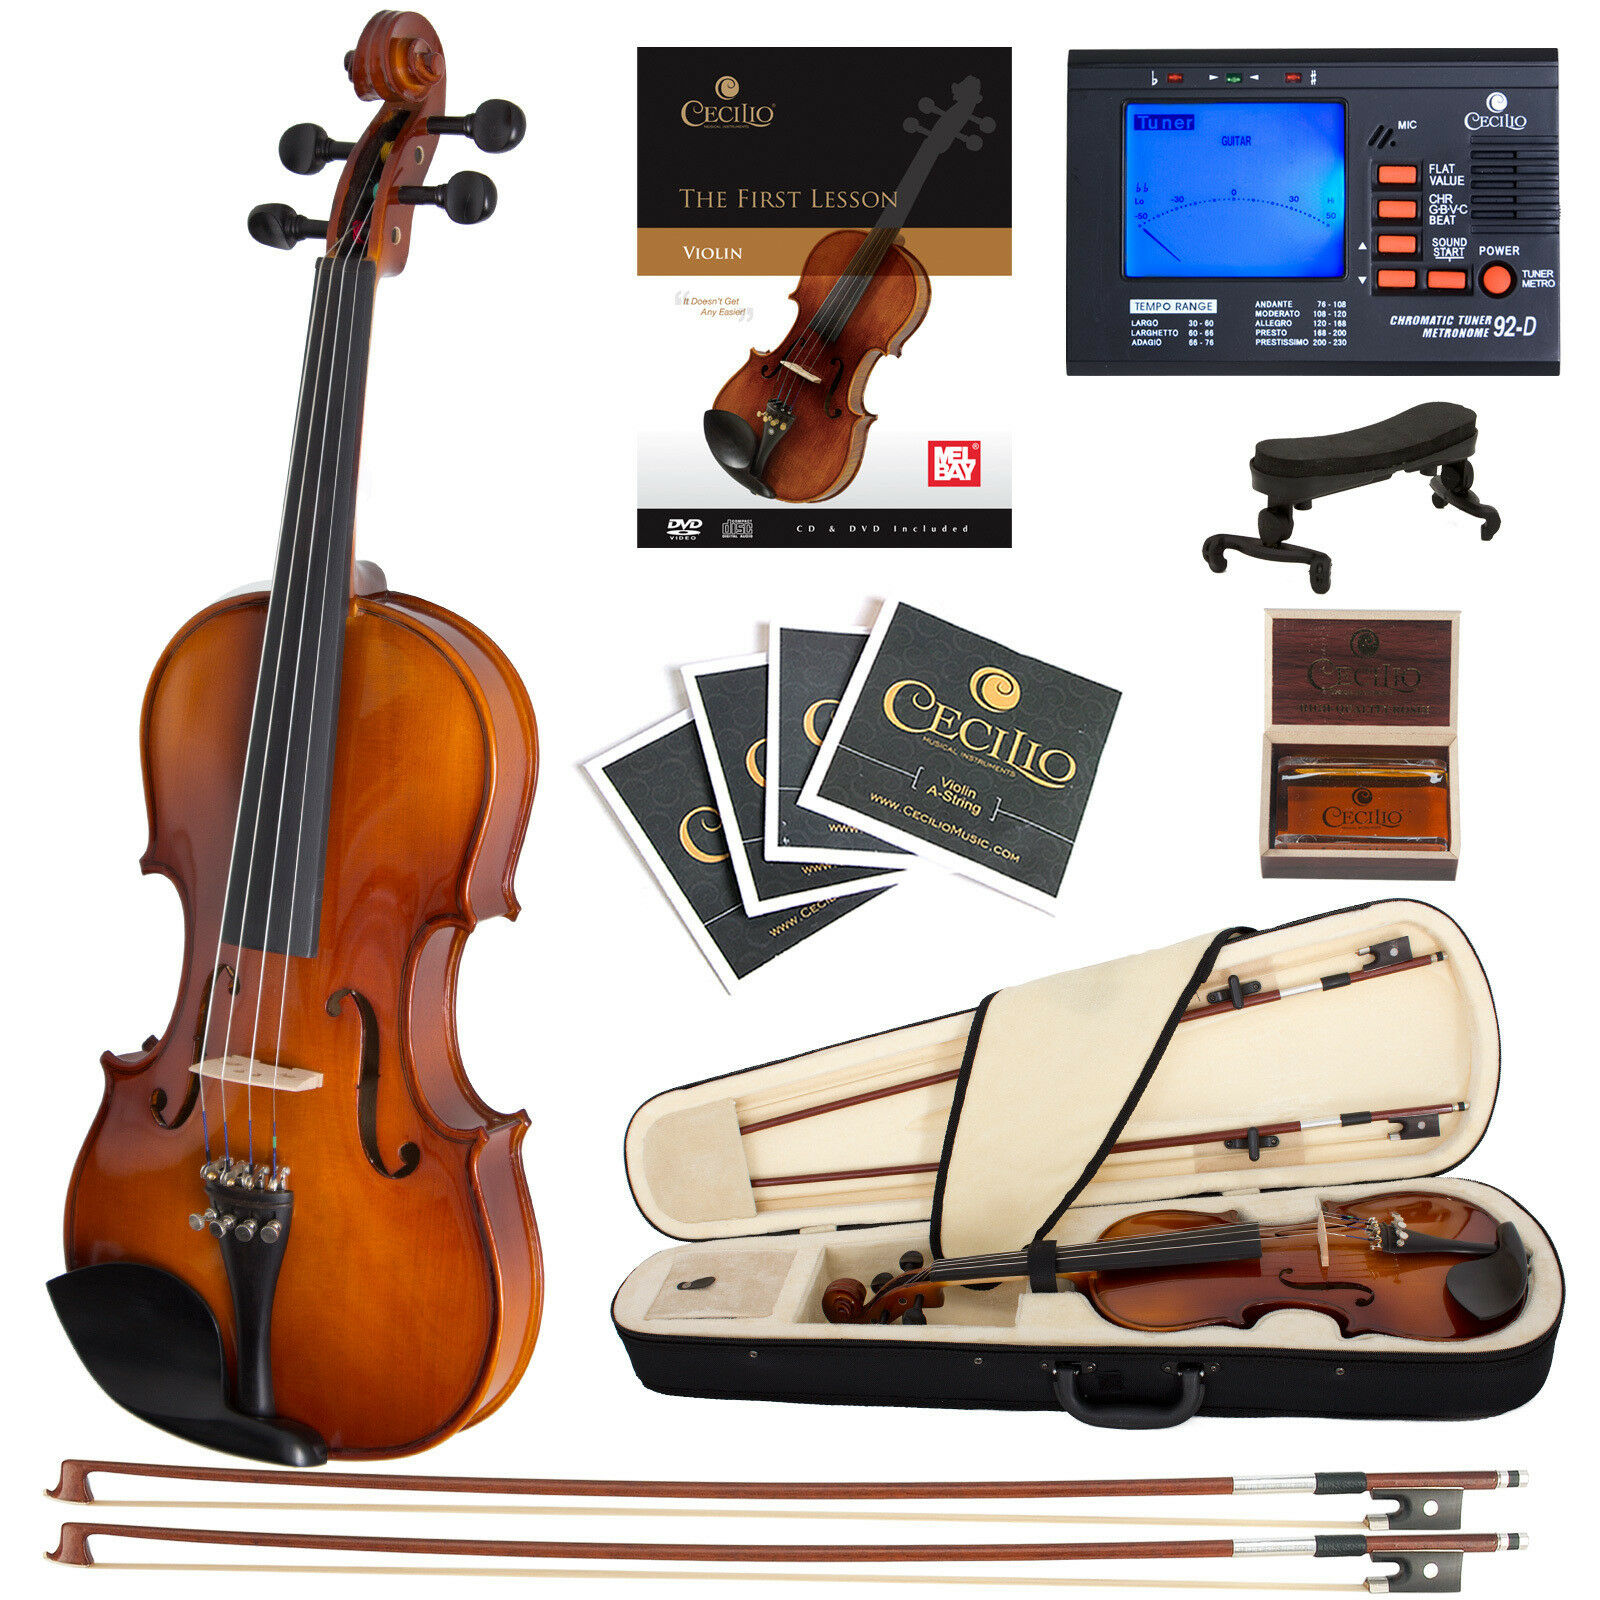 cecilio-cvn-300-ebony-fitted-violin-4-4-3-4-1-2-1-4